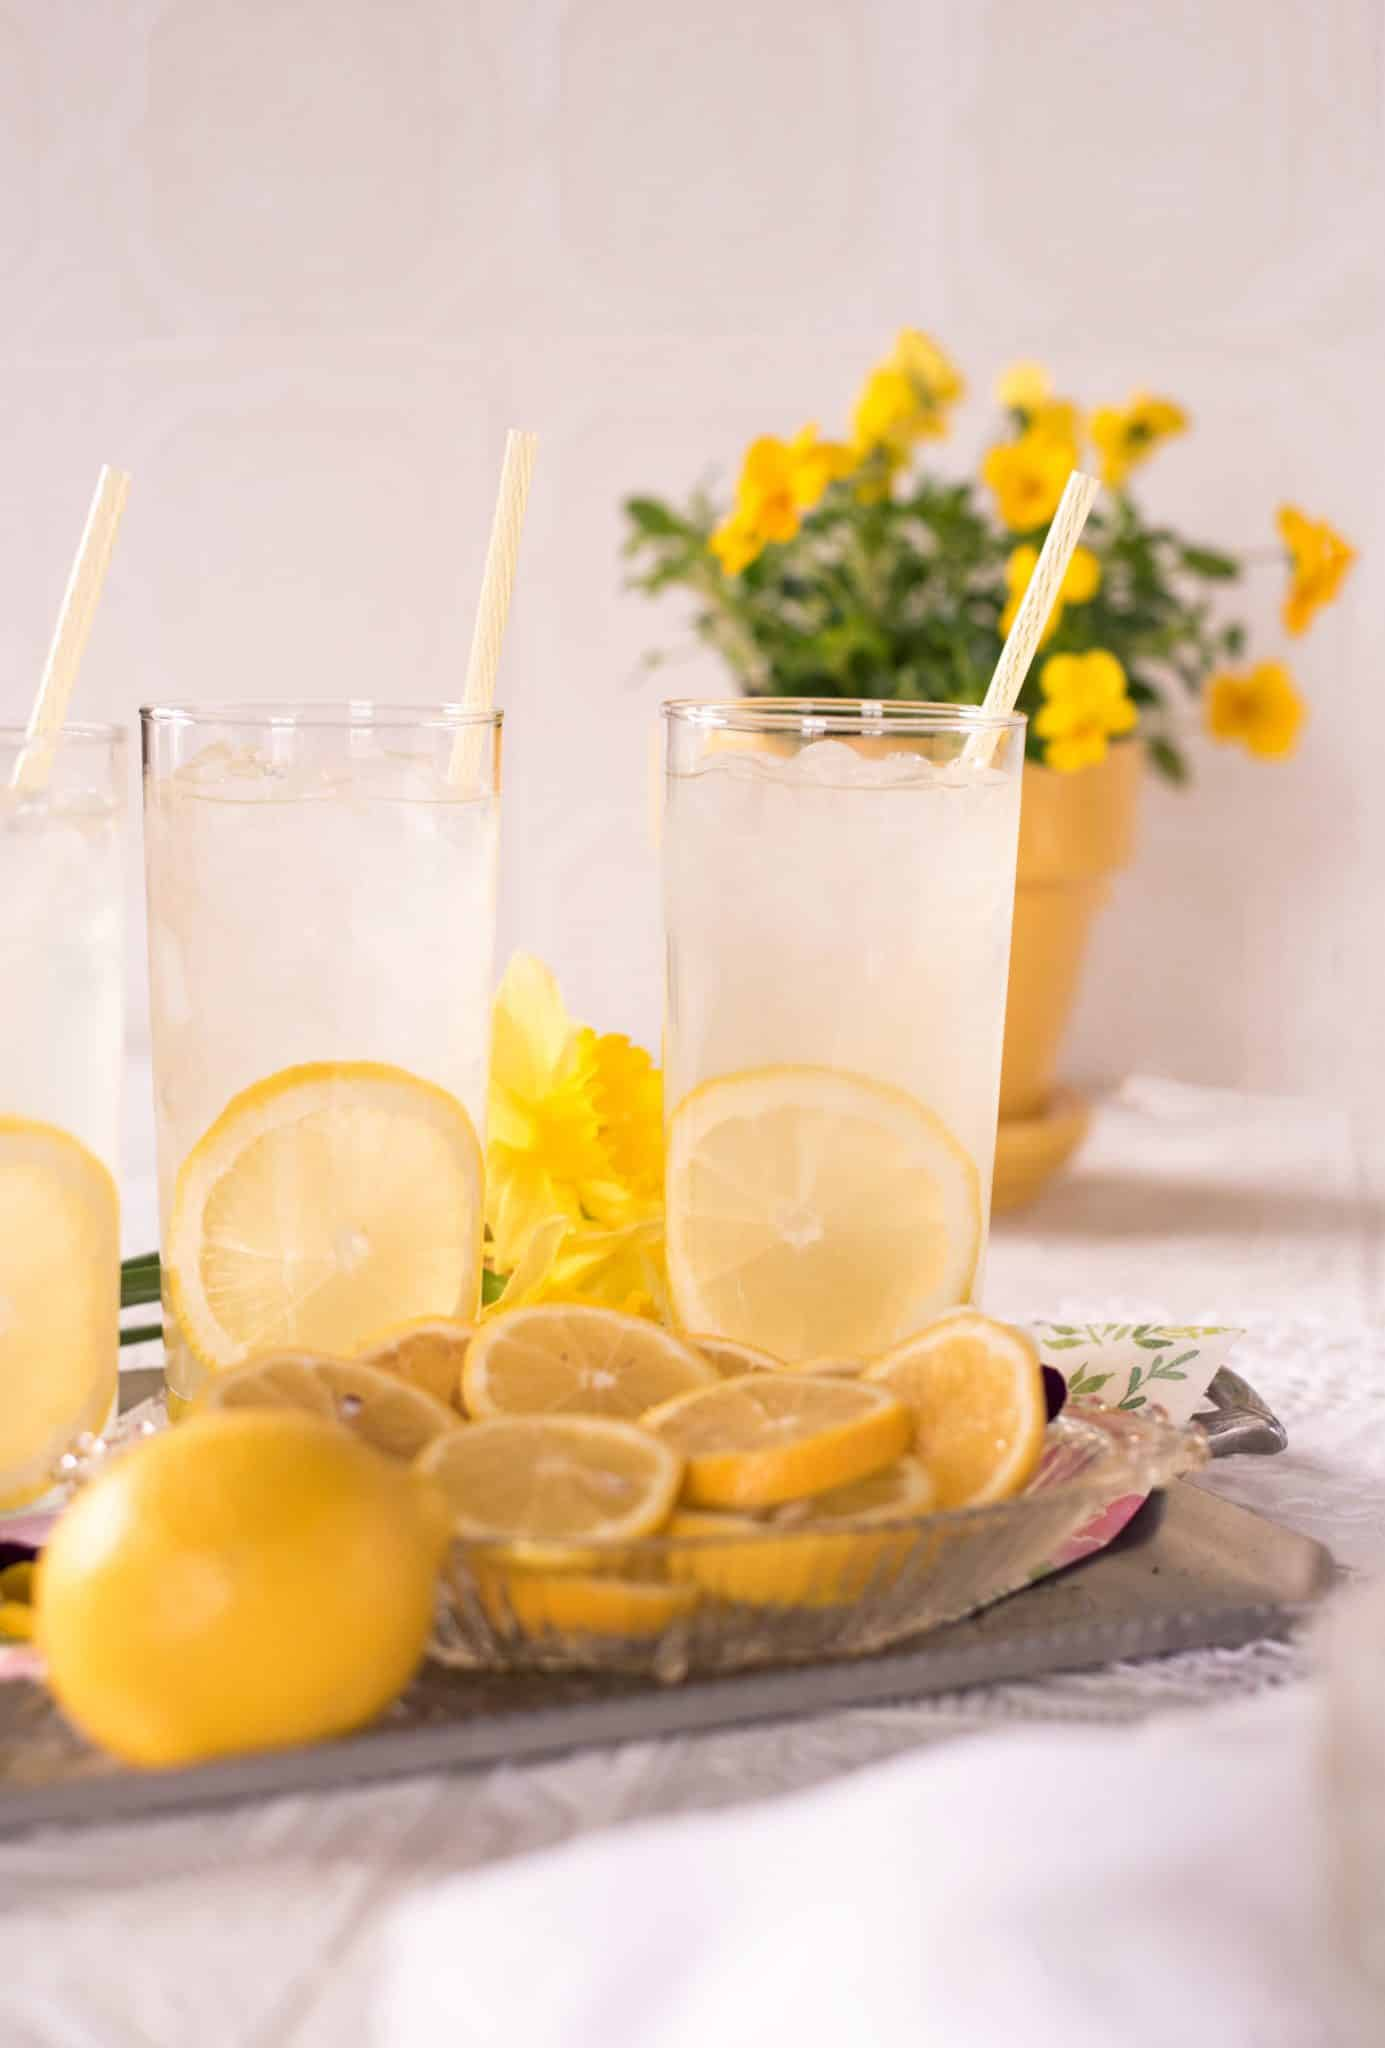 Serving tray with three glasses of lemonade with a slice of lemon inside each glass